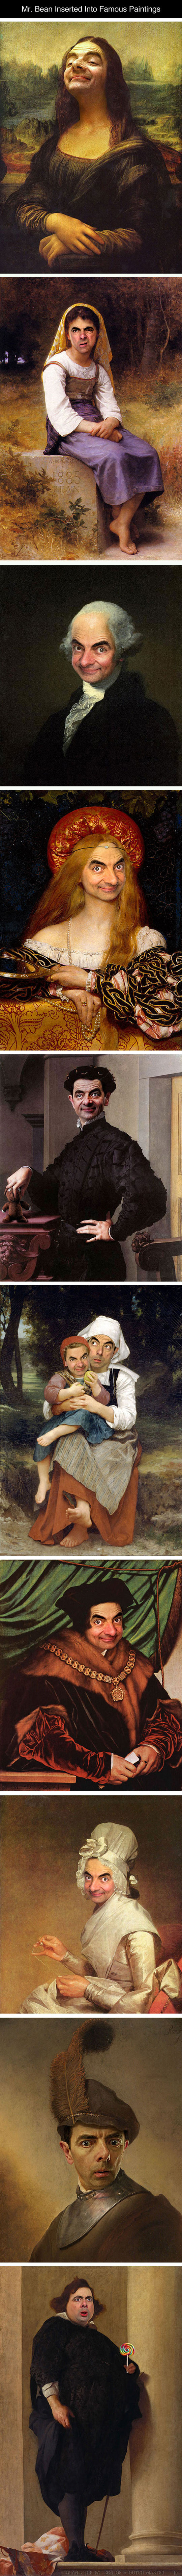 cool-Mr-Bean-famous-paintings